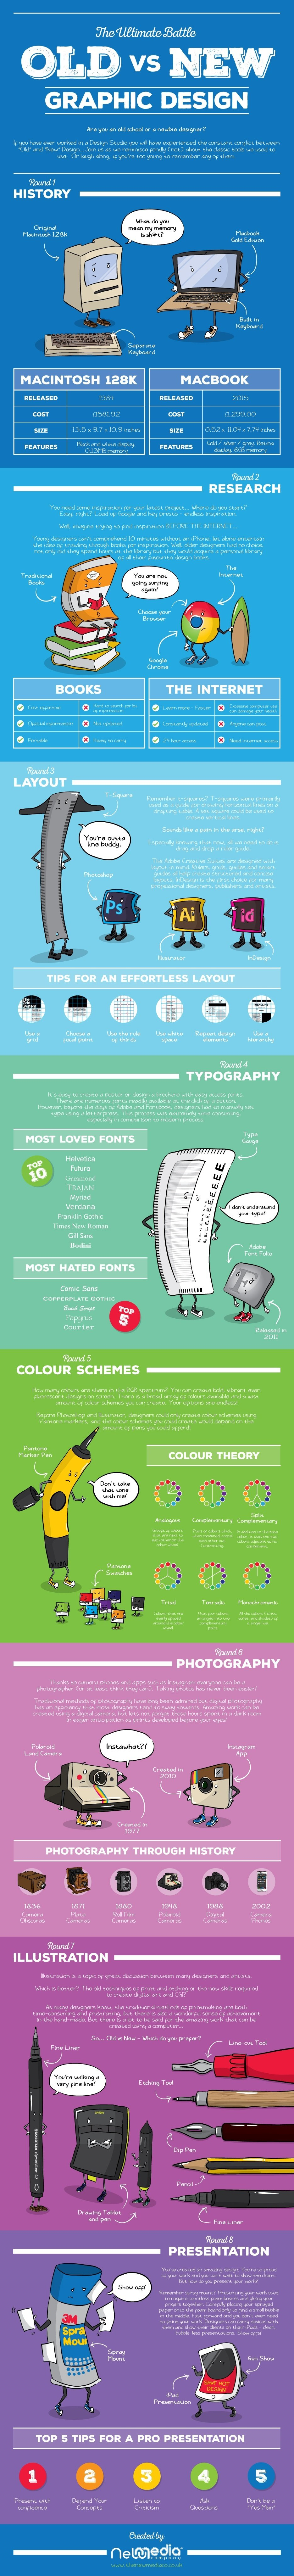 old vs new graphic design infographic